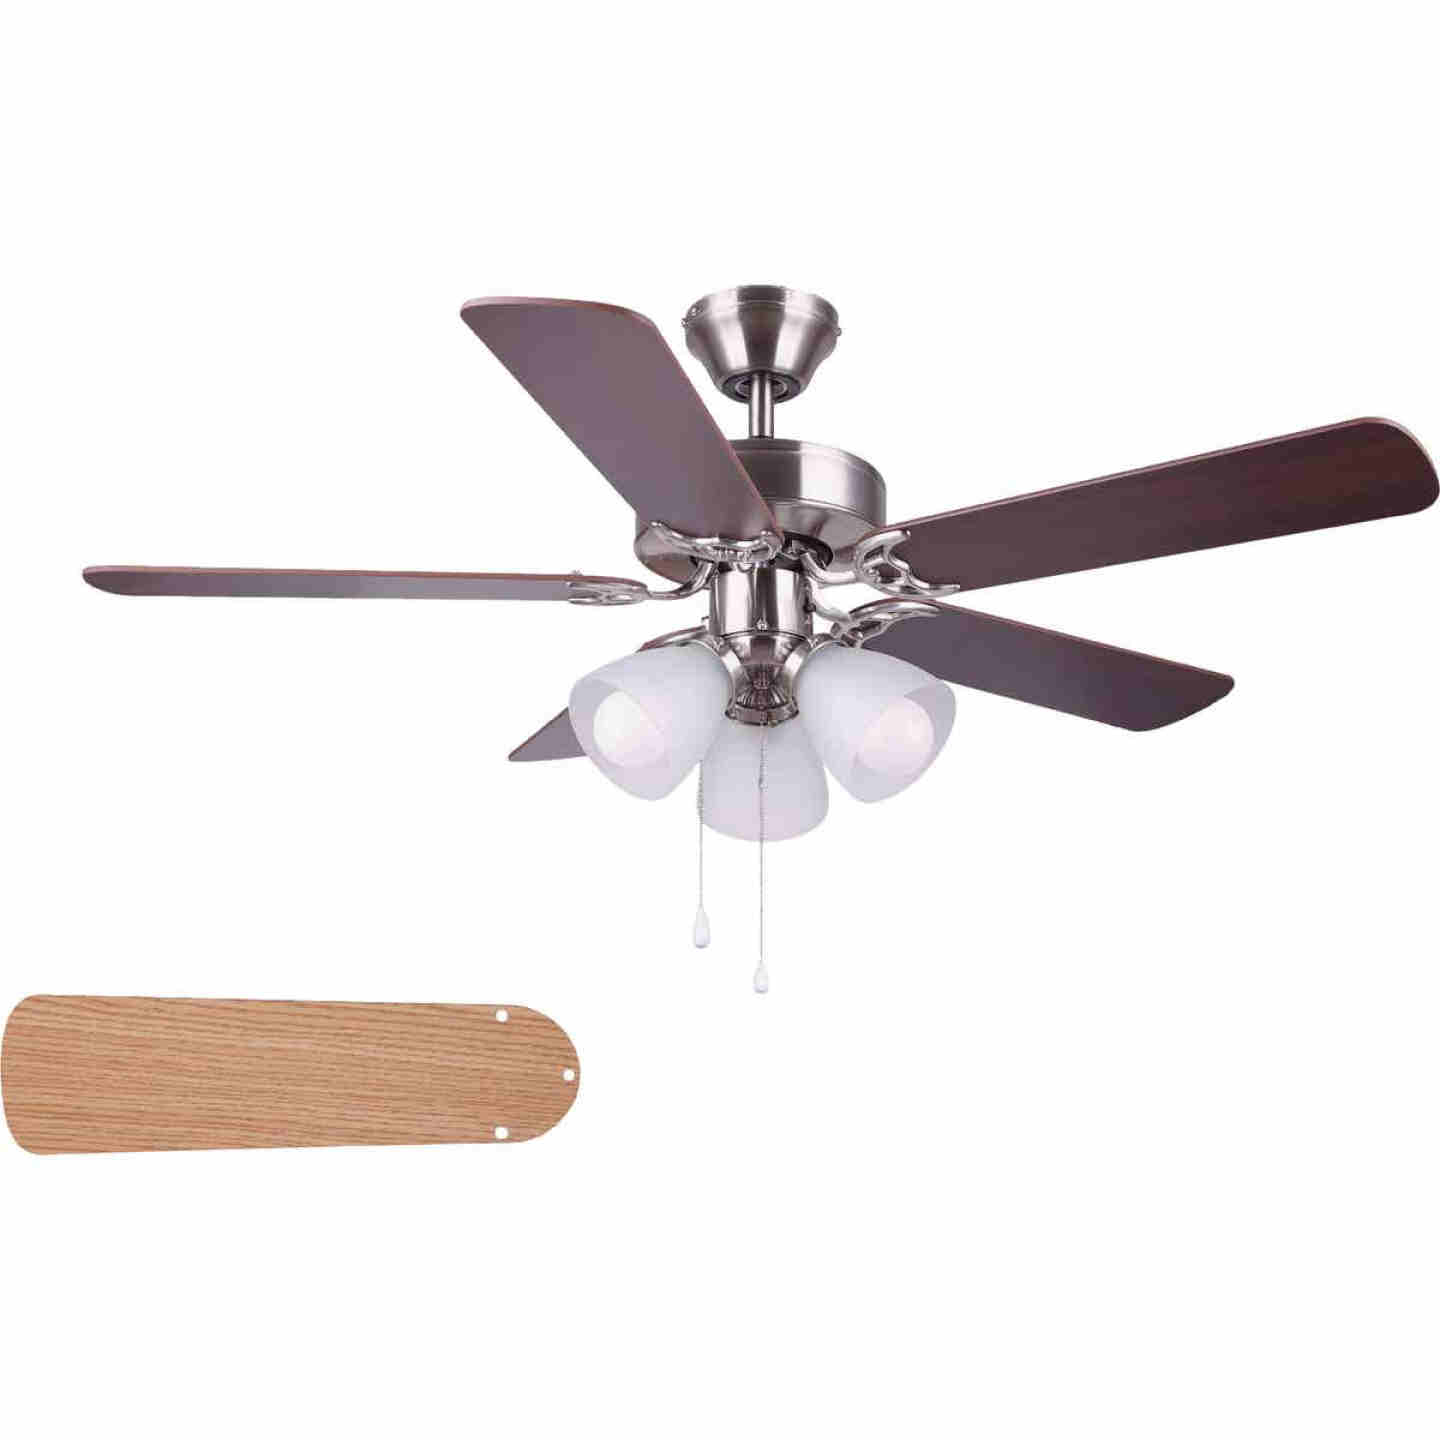 Home Impressions Studio 42 In. Brushed Nickel Ceiling Fan with Light Kit Image 1